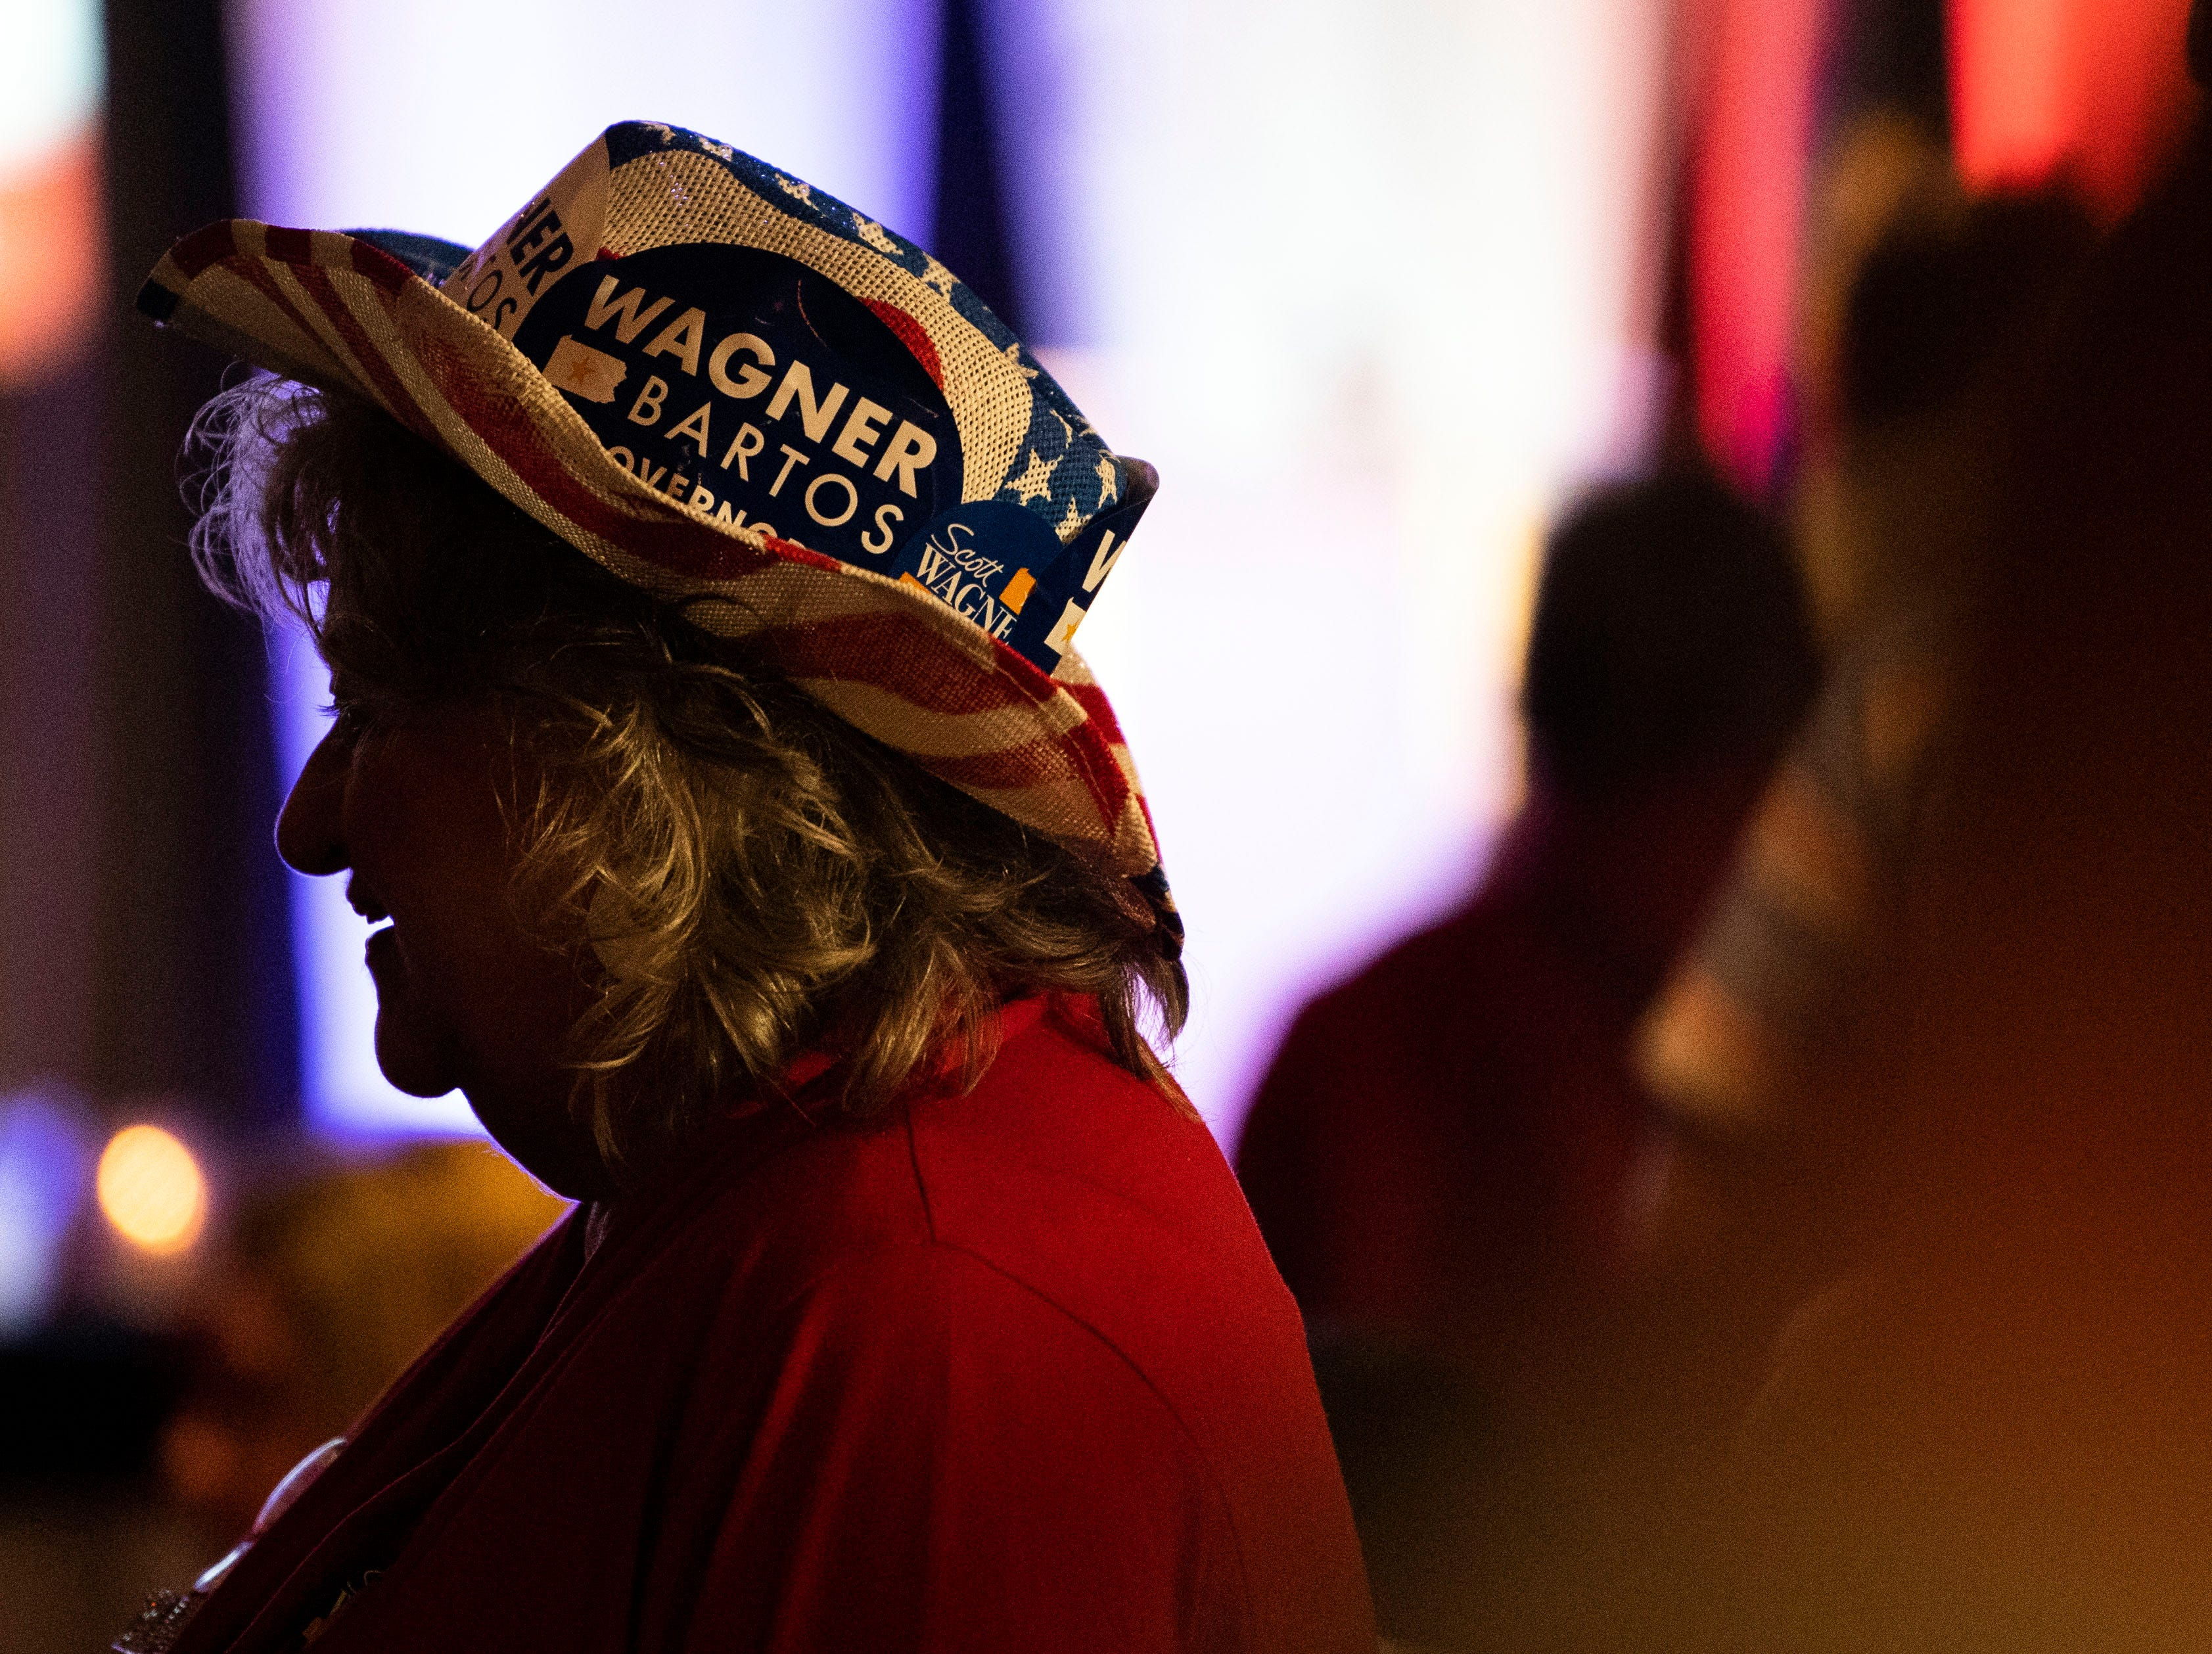 Sandy Riebling, of East Berlin, speaks with media during Republican Scott Wagner's election watch party at the Wyndham Garden York hotel on Tuesday, Nov. 6, 2018. Wagner lost to Democratic incumbent Tom Wolf. During his concession speech, Wagner said he's not going anywhere.